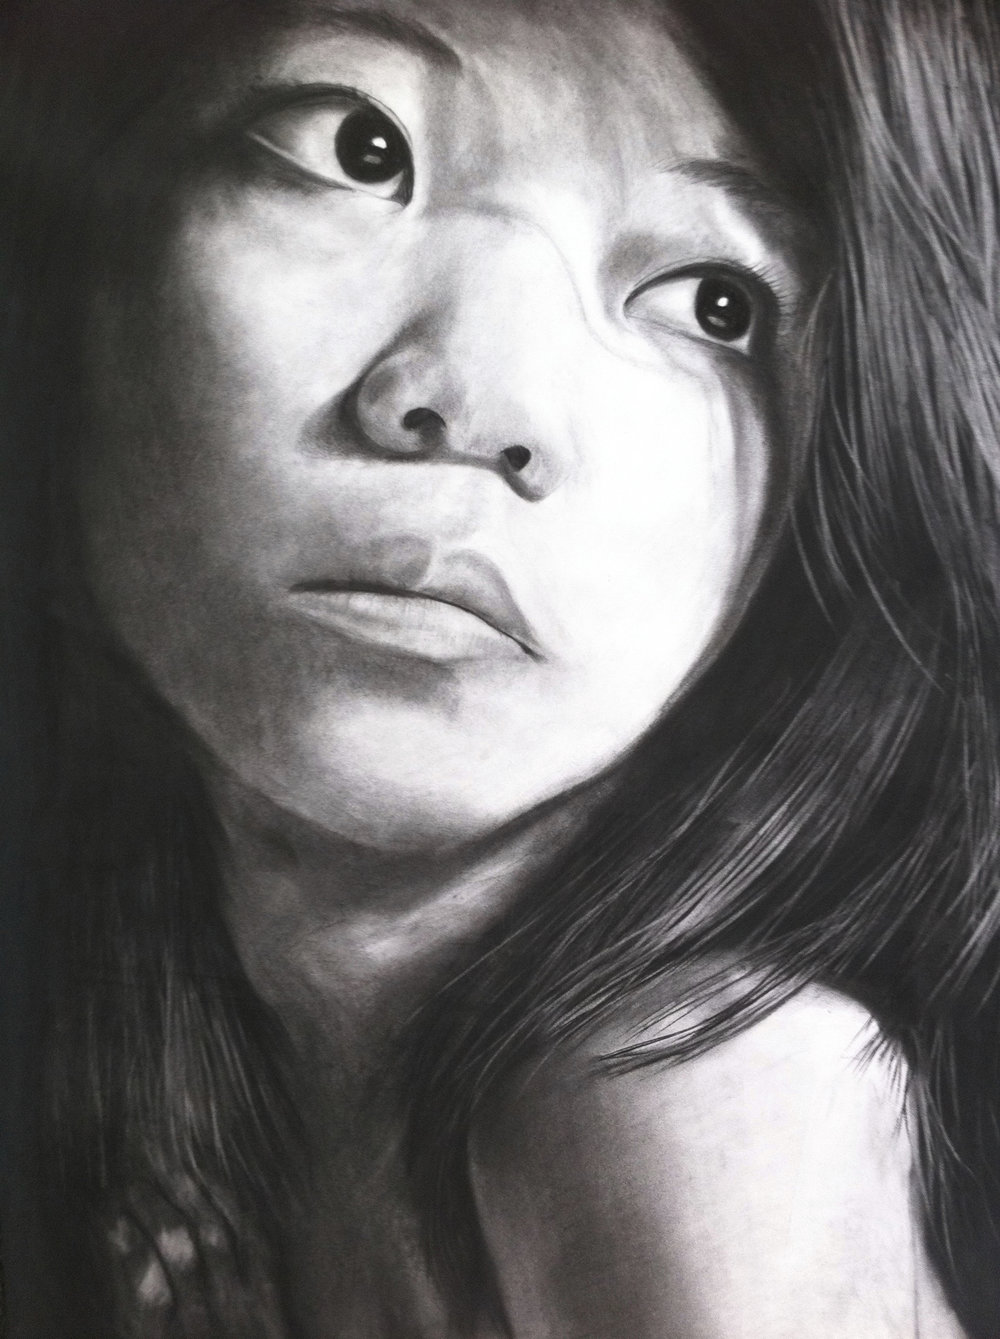 Self-portrait, charcoal